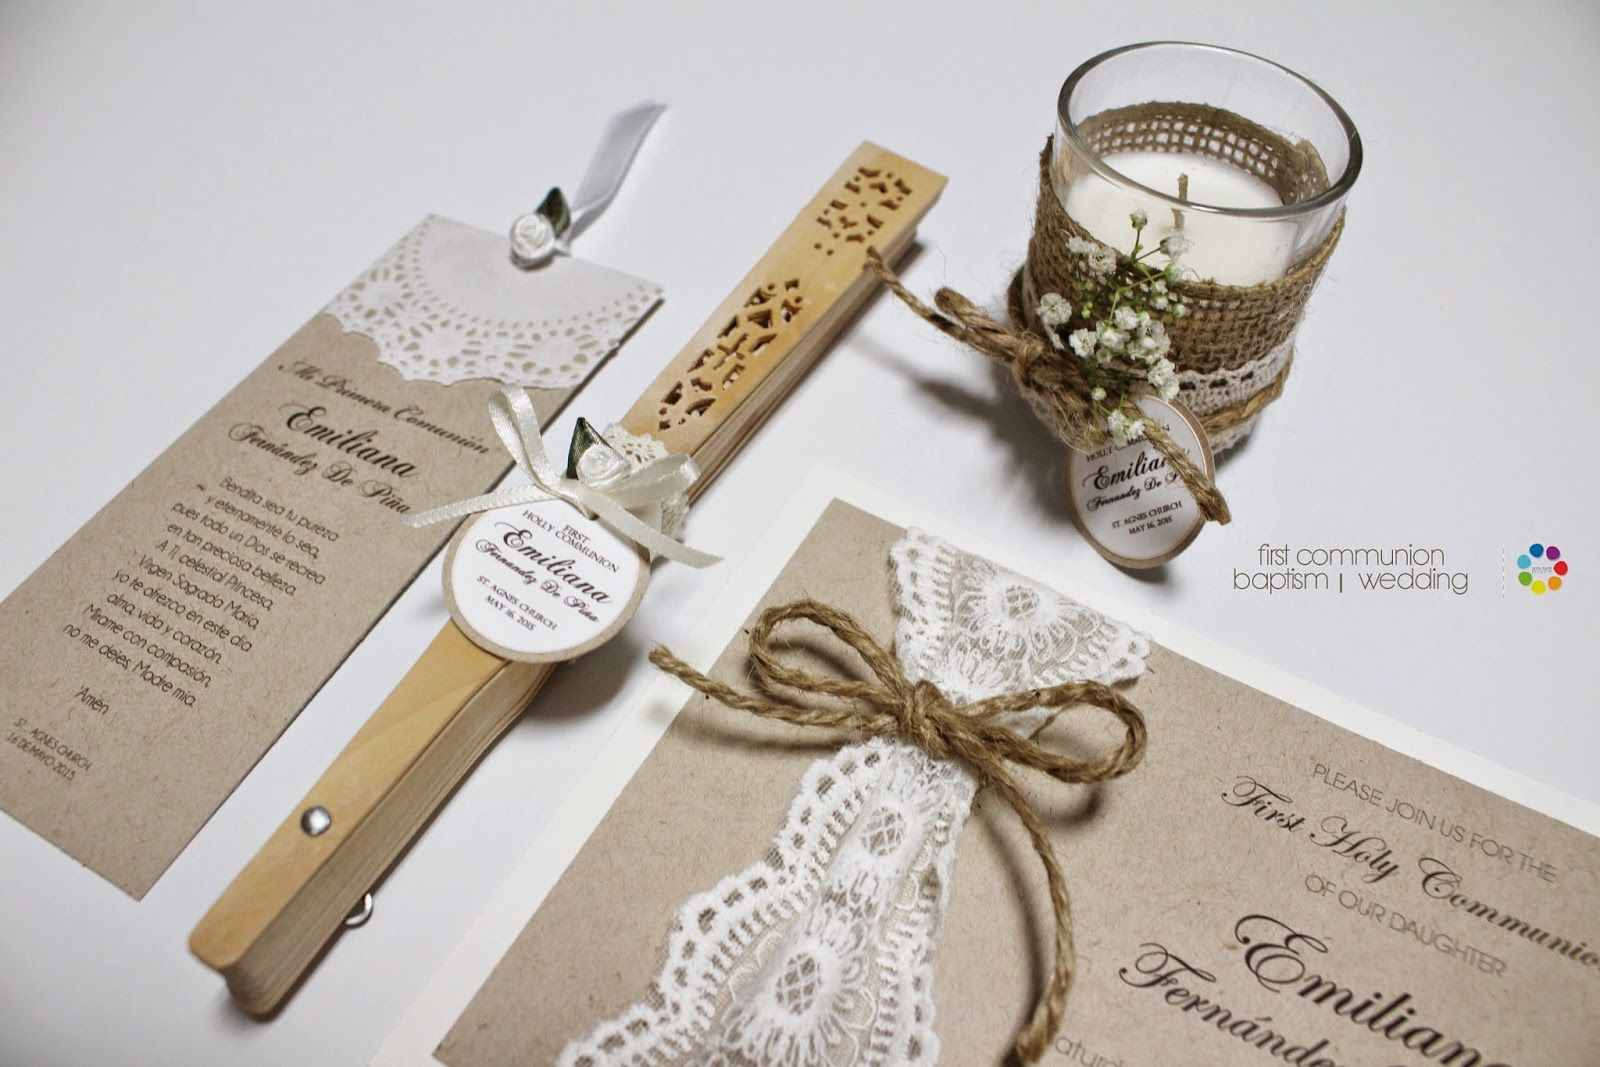 Vintage favors set perfect for First Communion, Baptism, Wedding ...